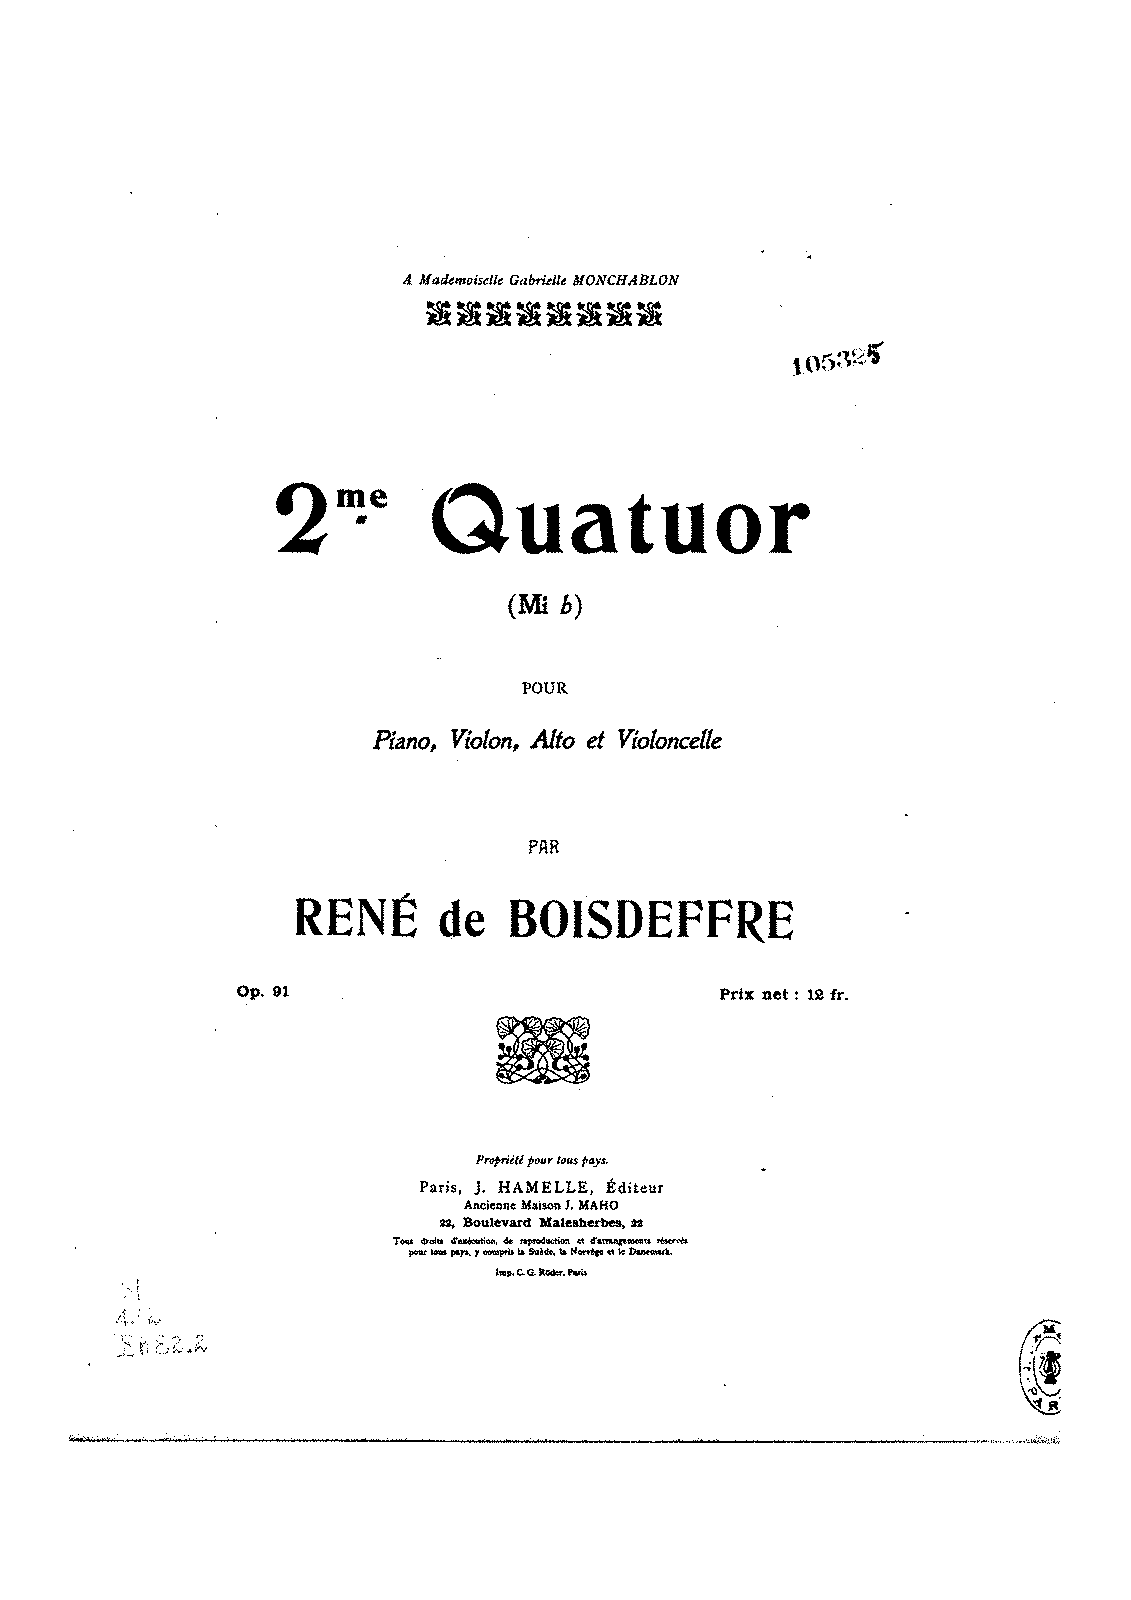 Boisdeffre Piano Quartet No.2 All parts.pdf